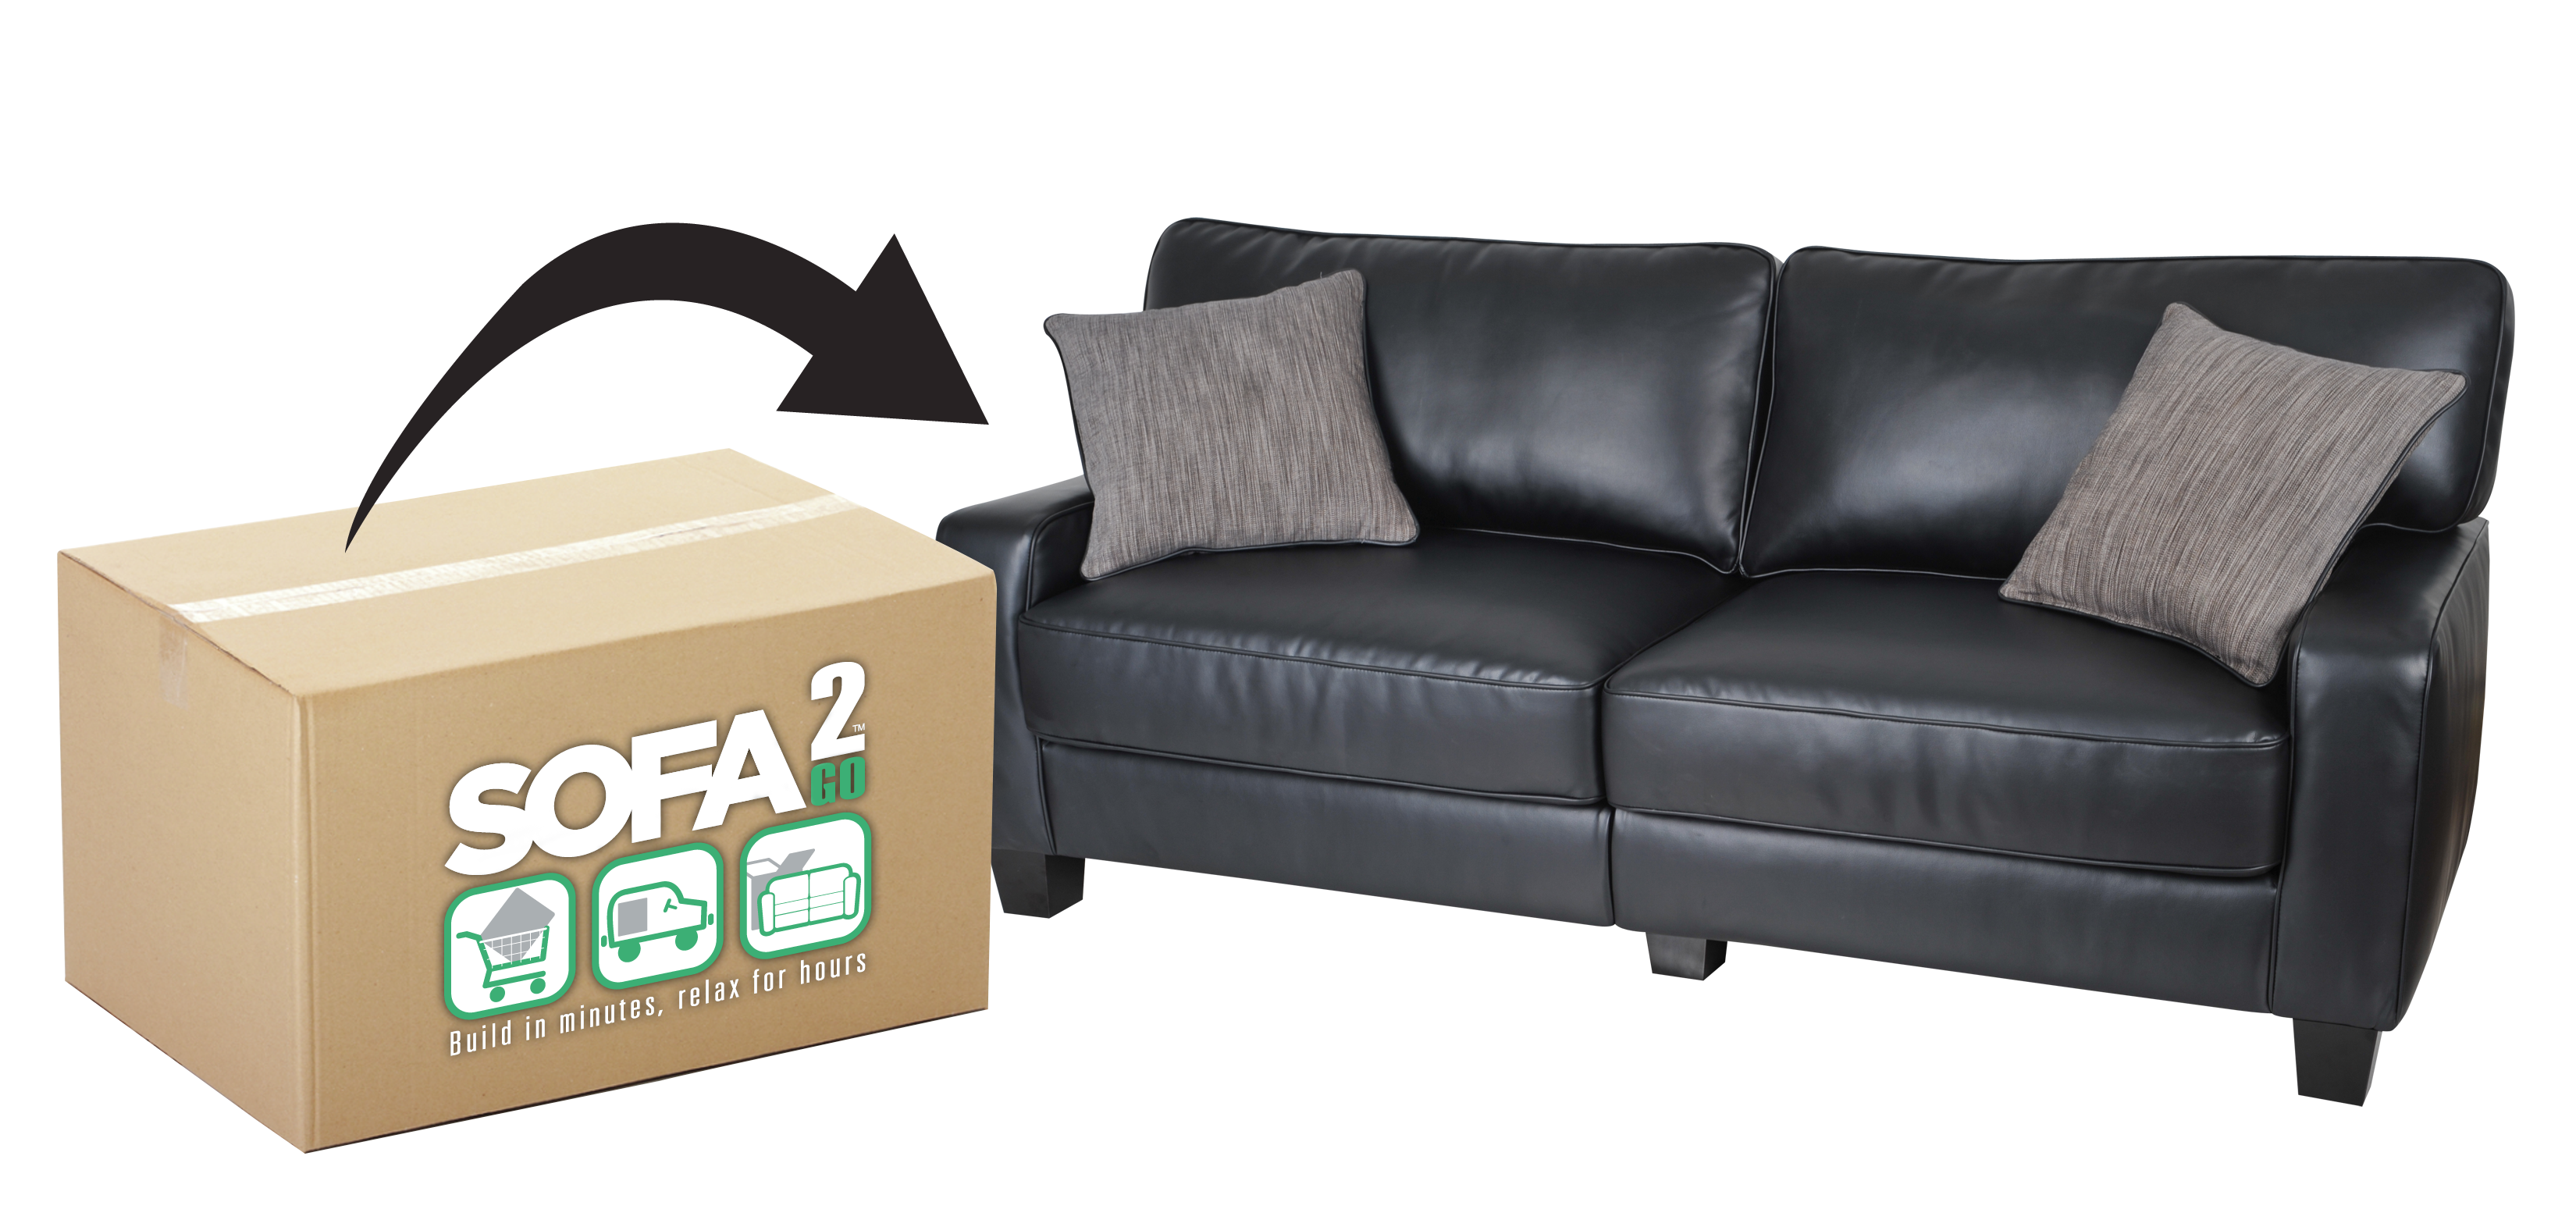 Serta fice Chairs and Sofas at fice Depot ficeMax